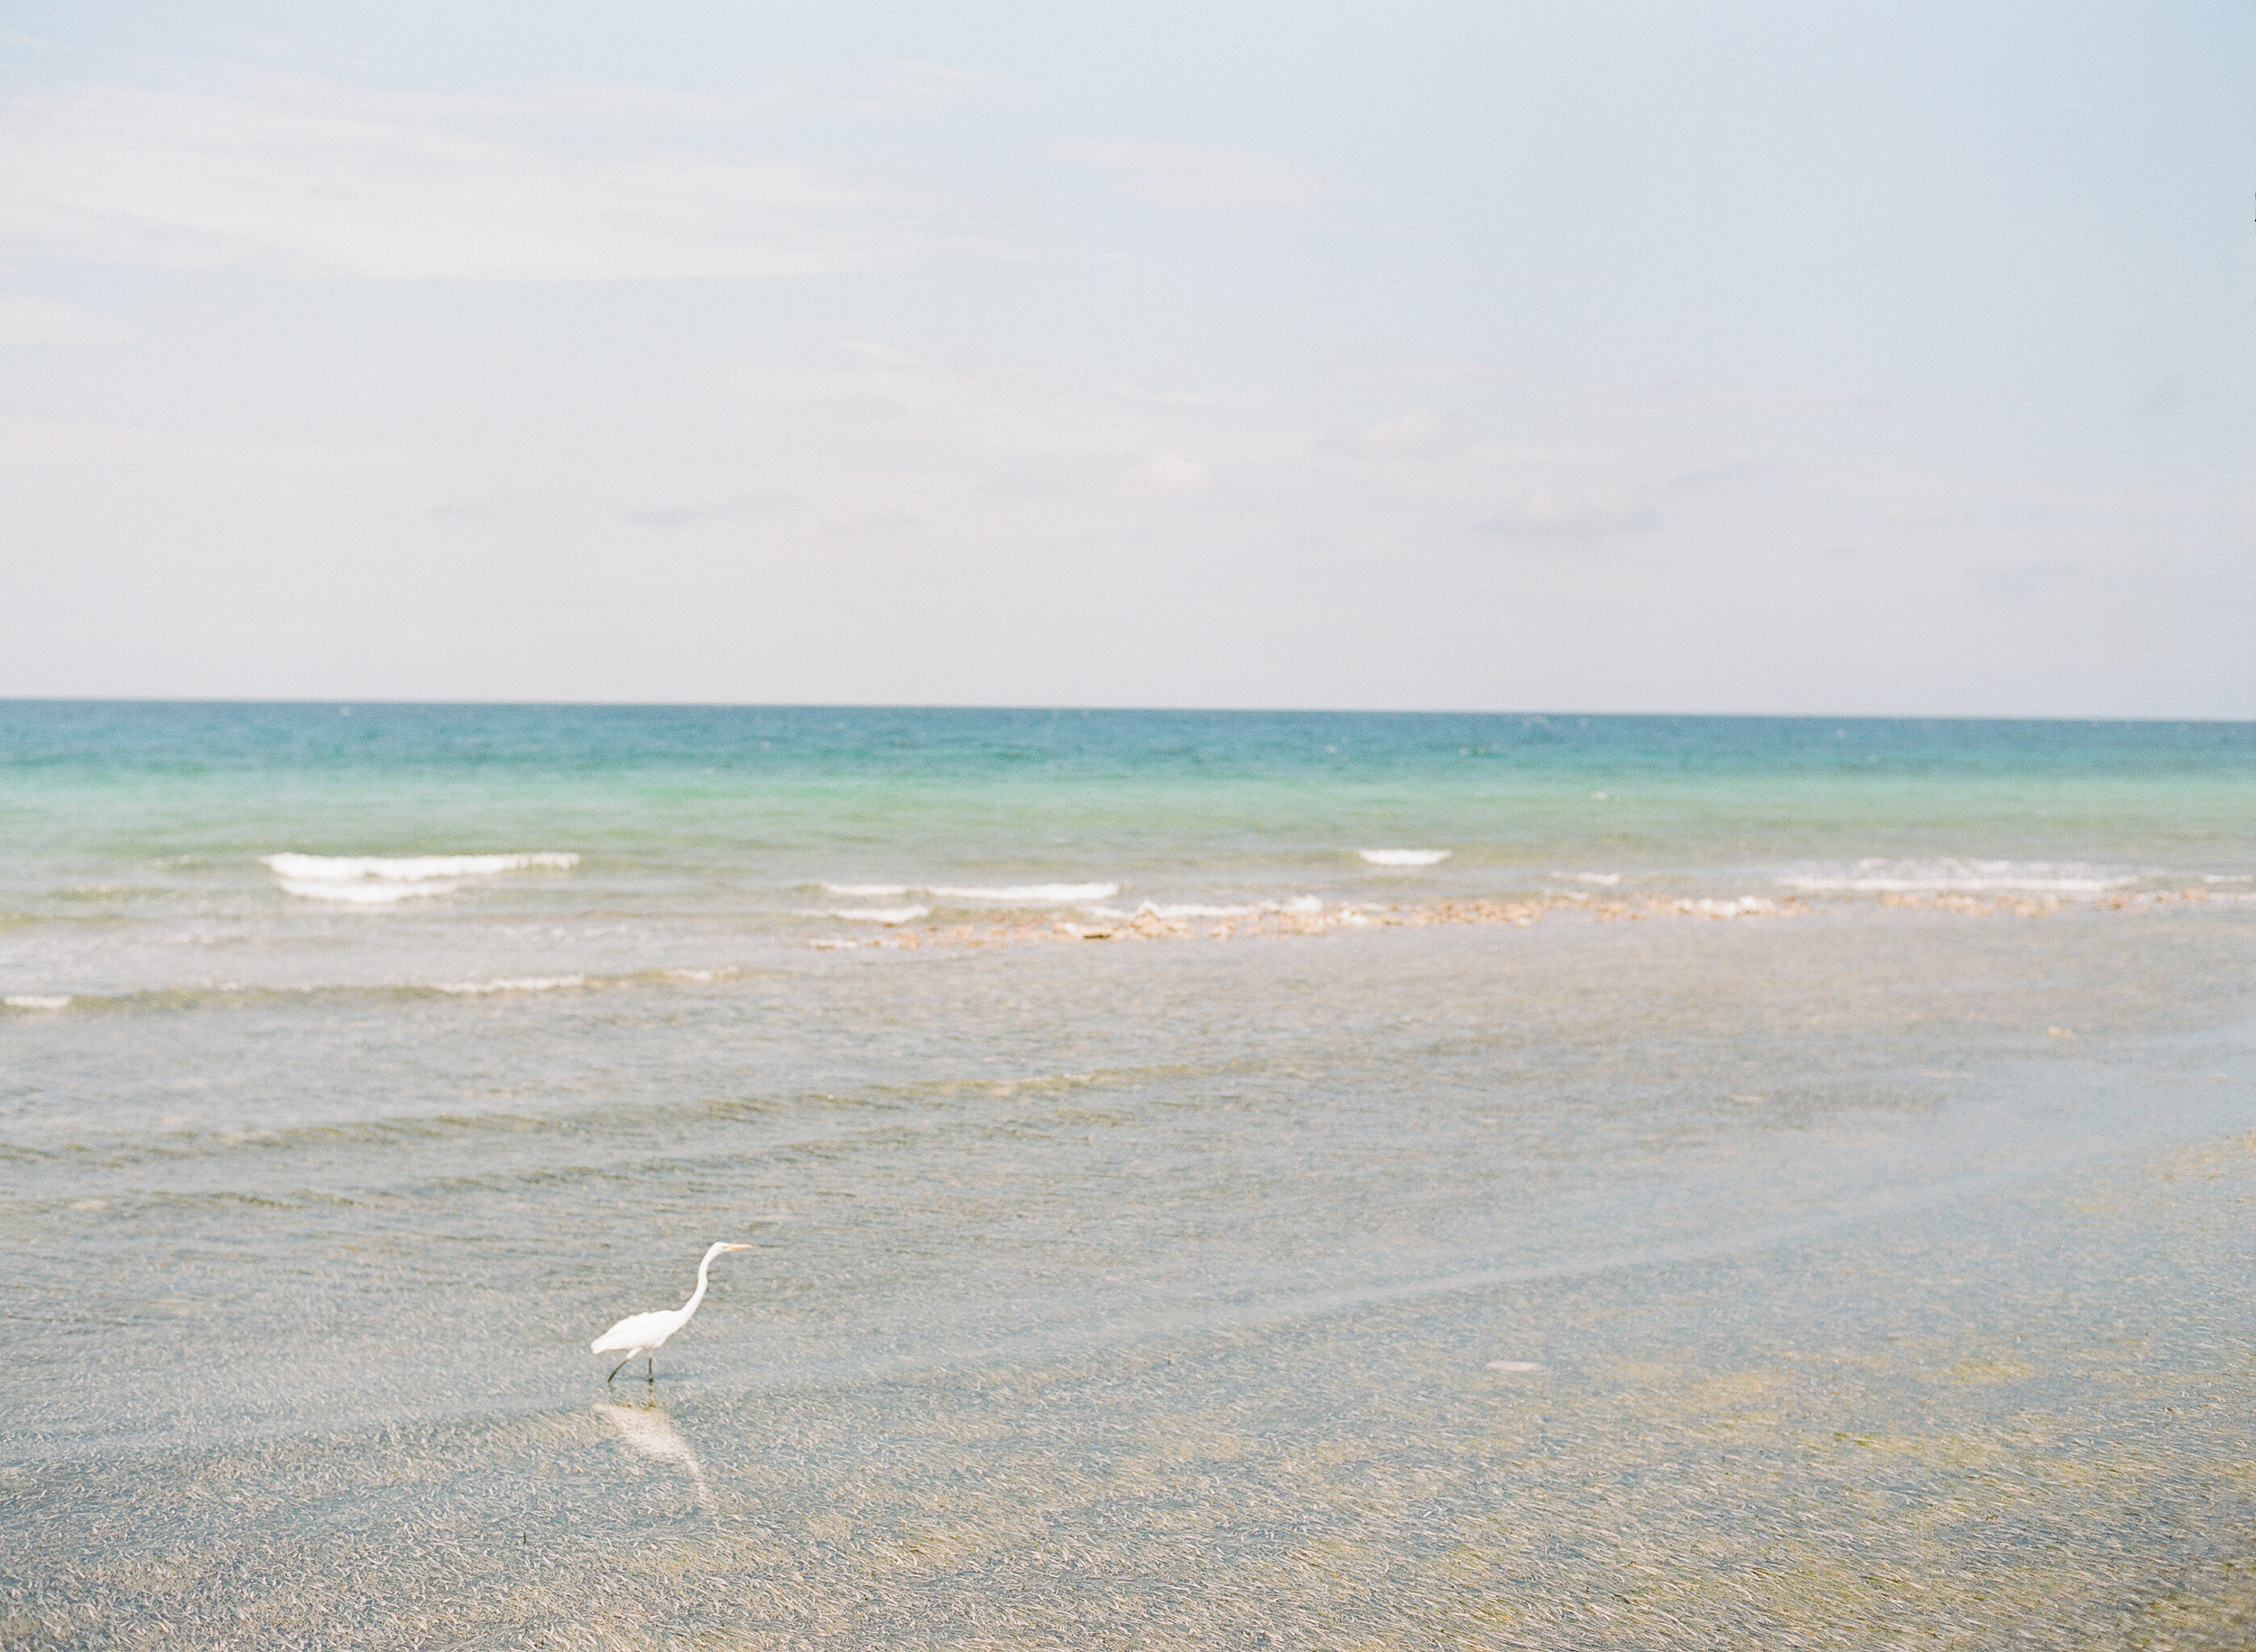 Stork in the ocean along the beach in Montego Bay, Jamaica